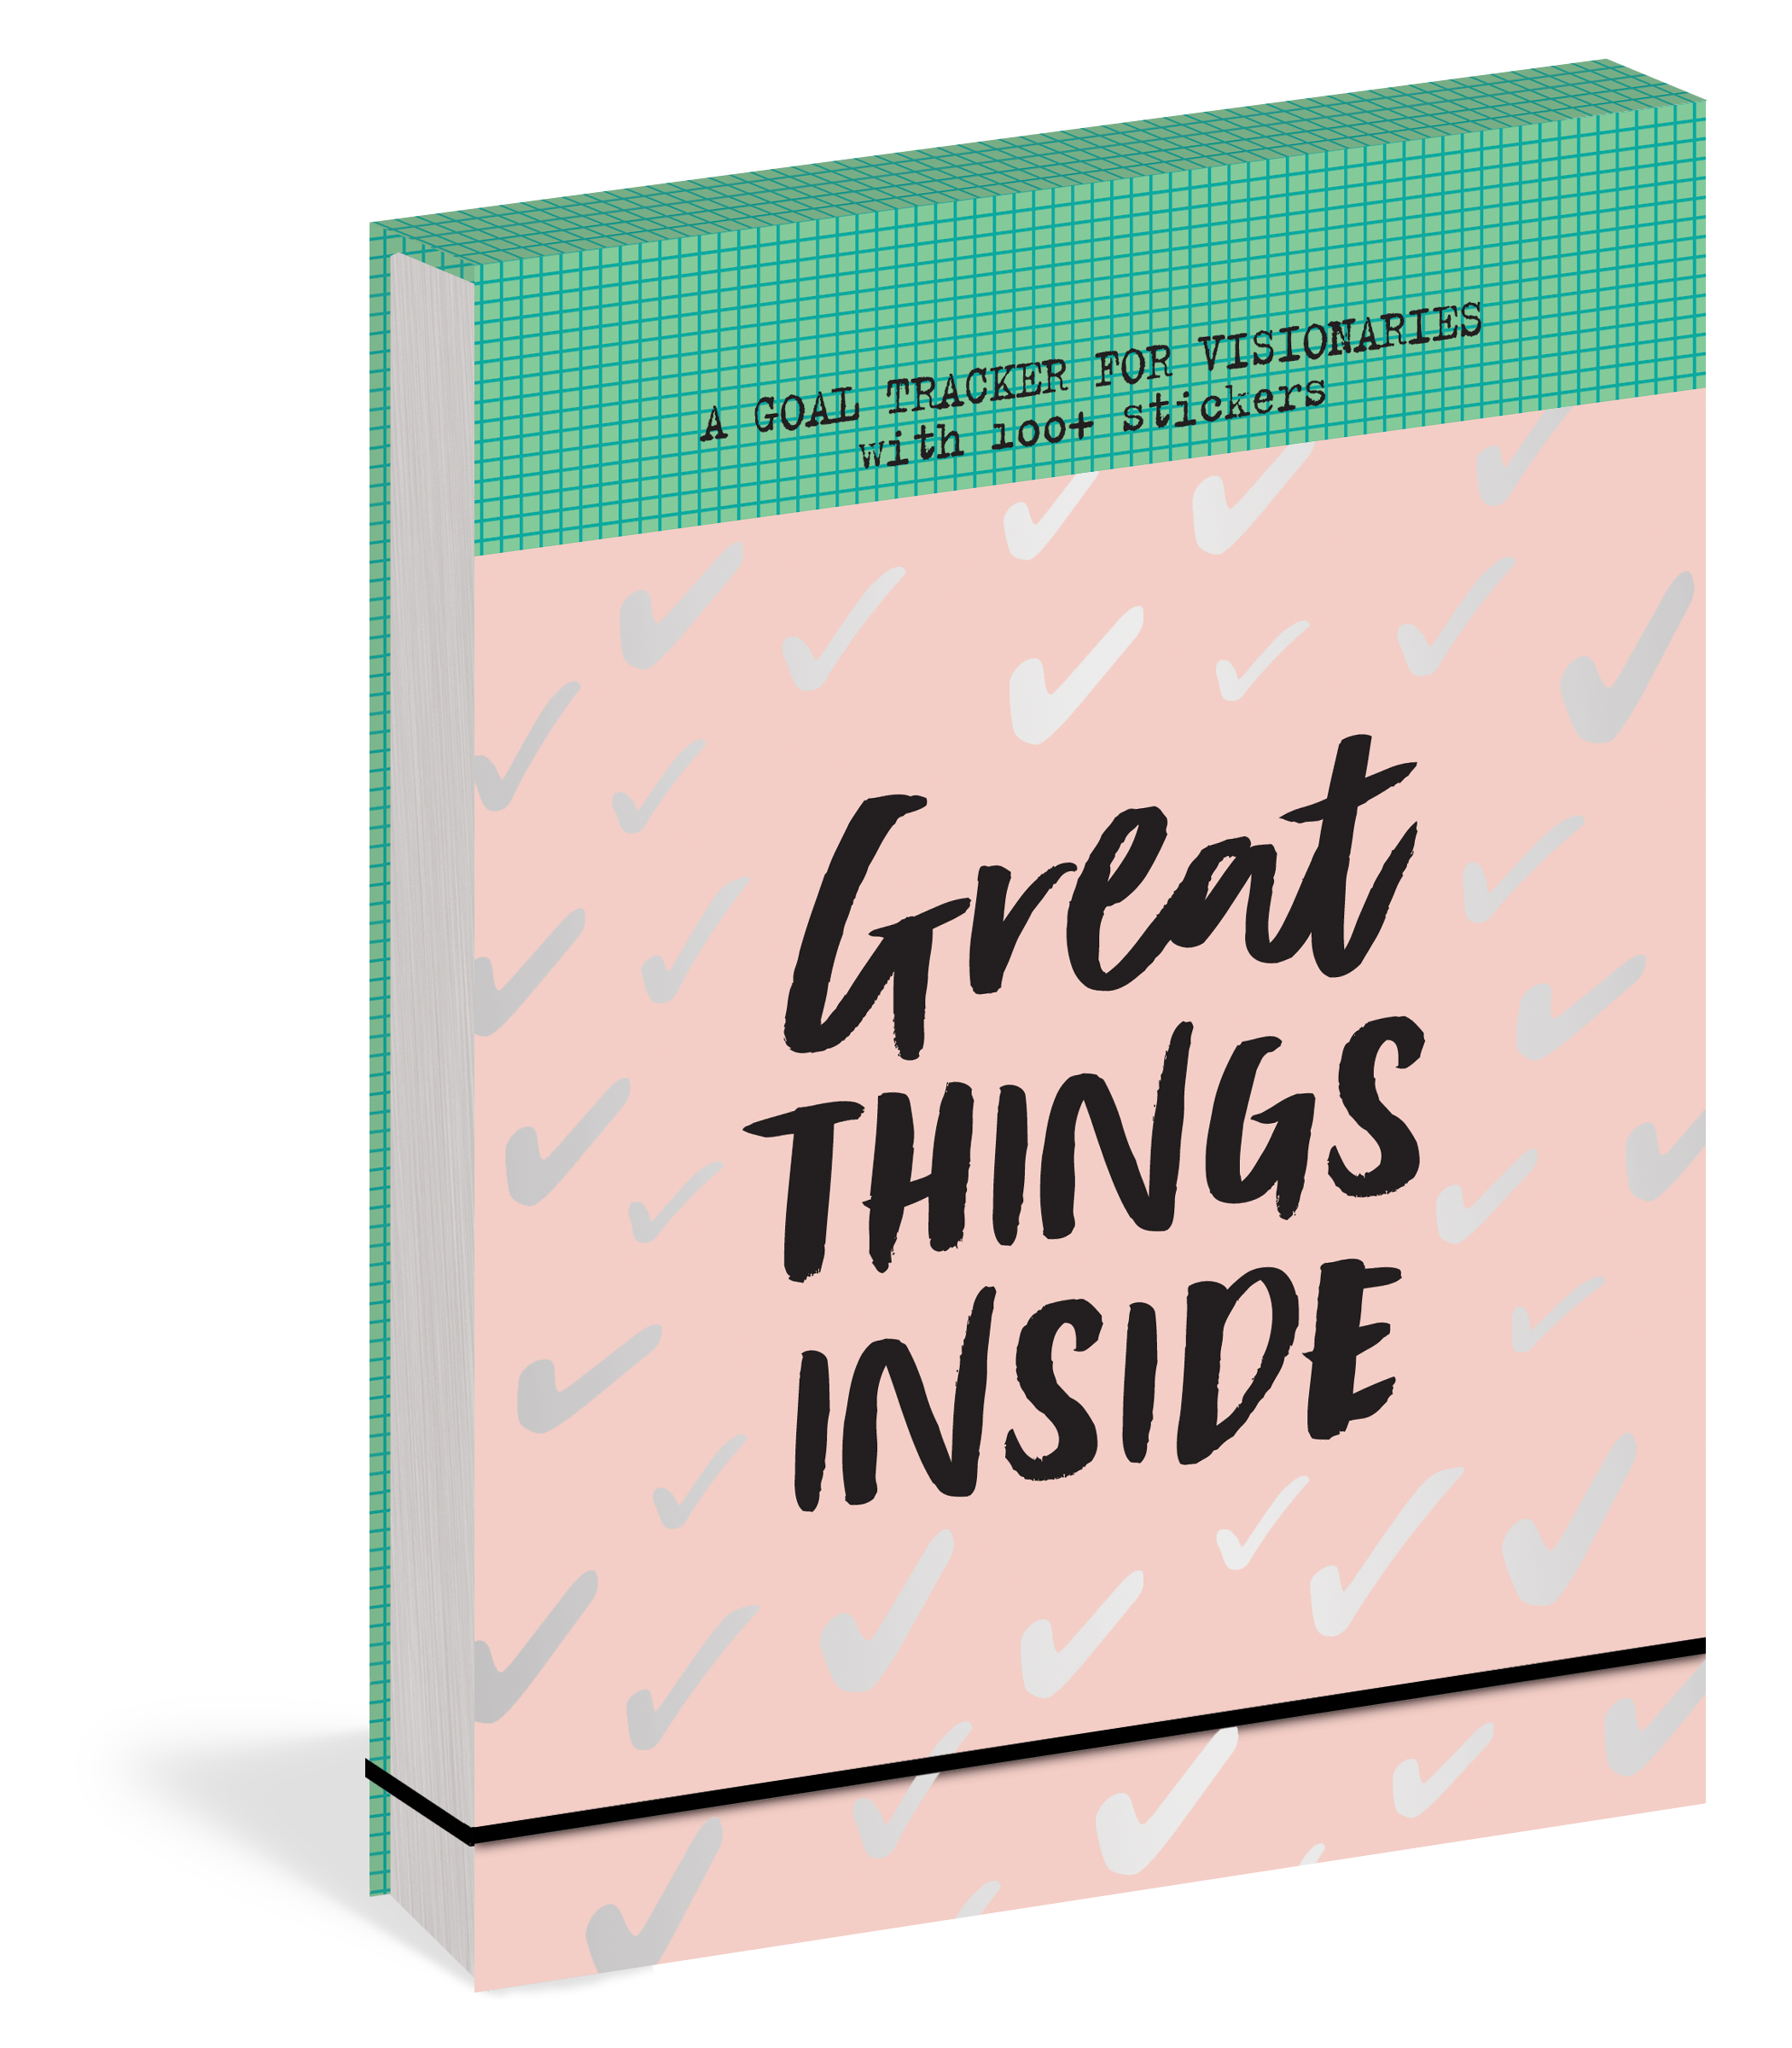 GREAT THINGS INSIDE : A GOAL TRACKER FOR VISIONARIES